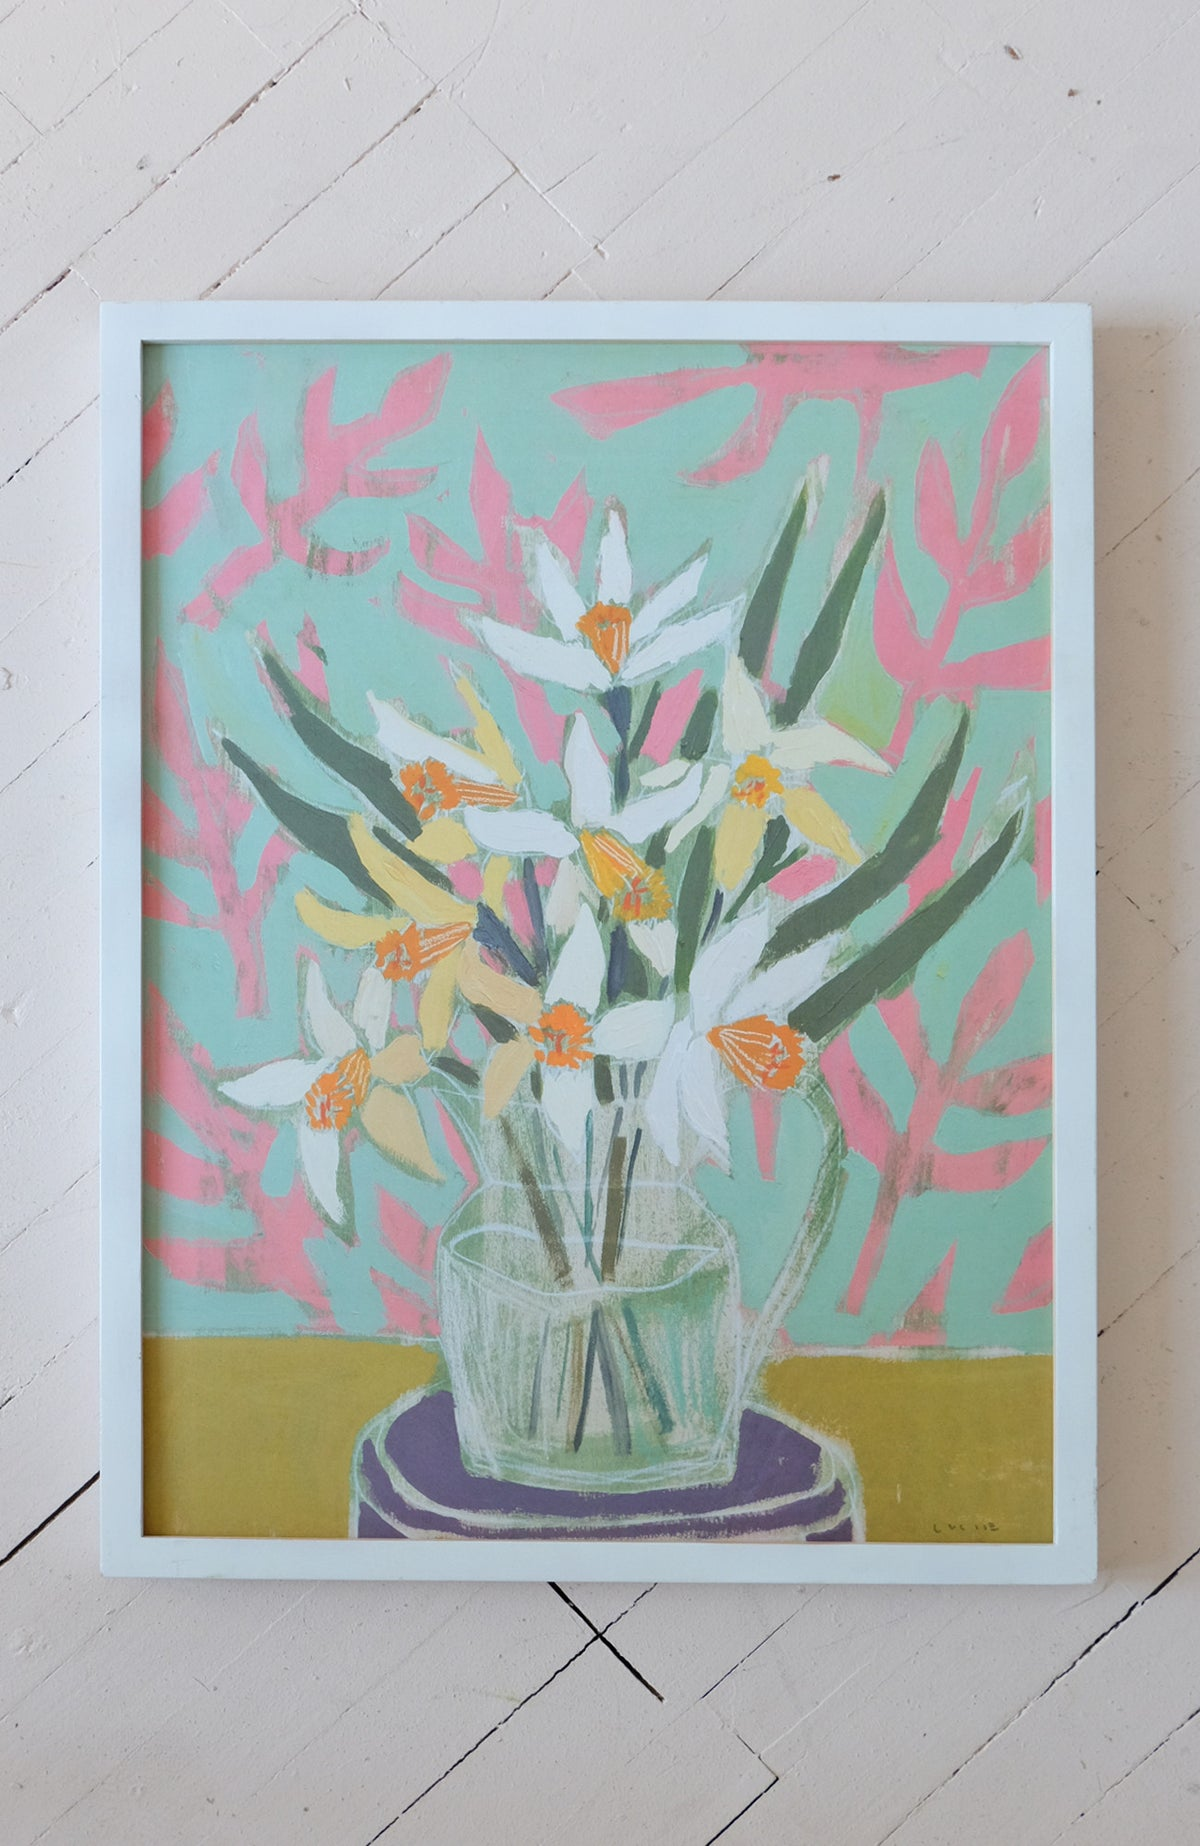 Daffodils - Flowers for Camille - Print